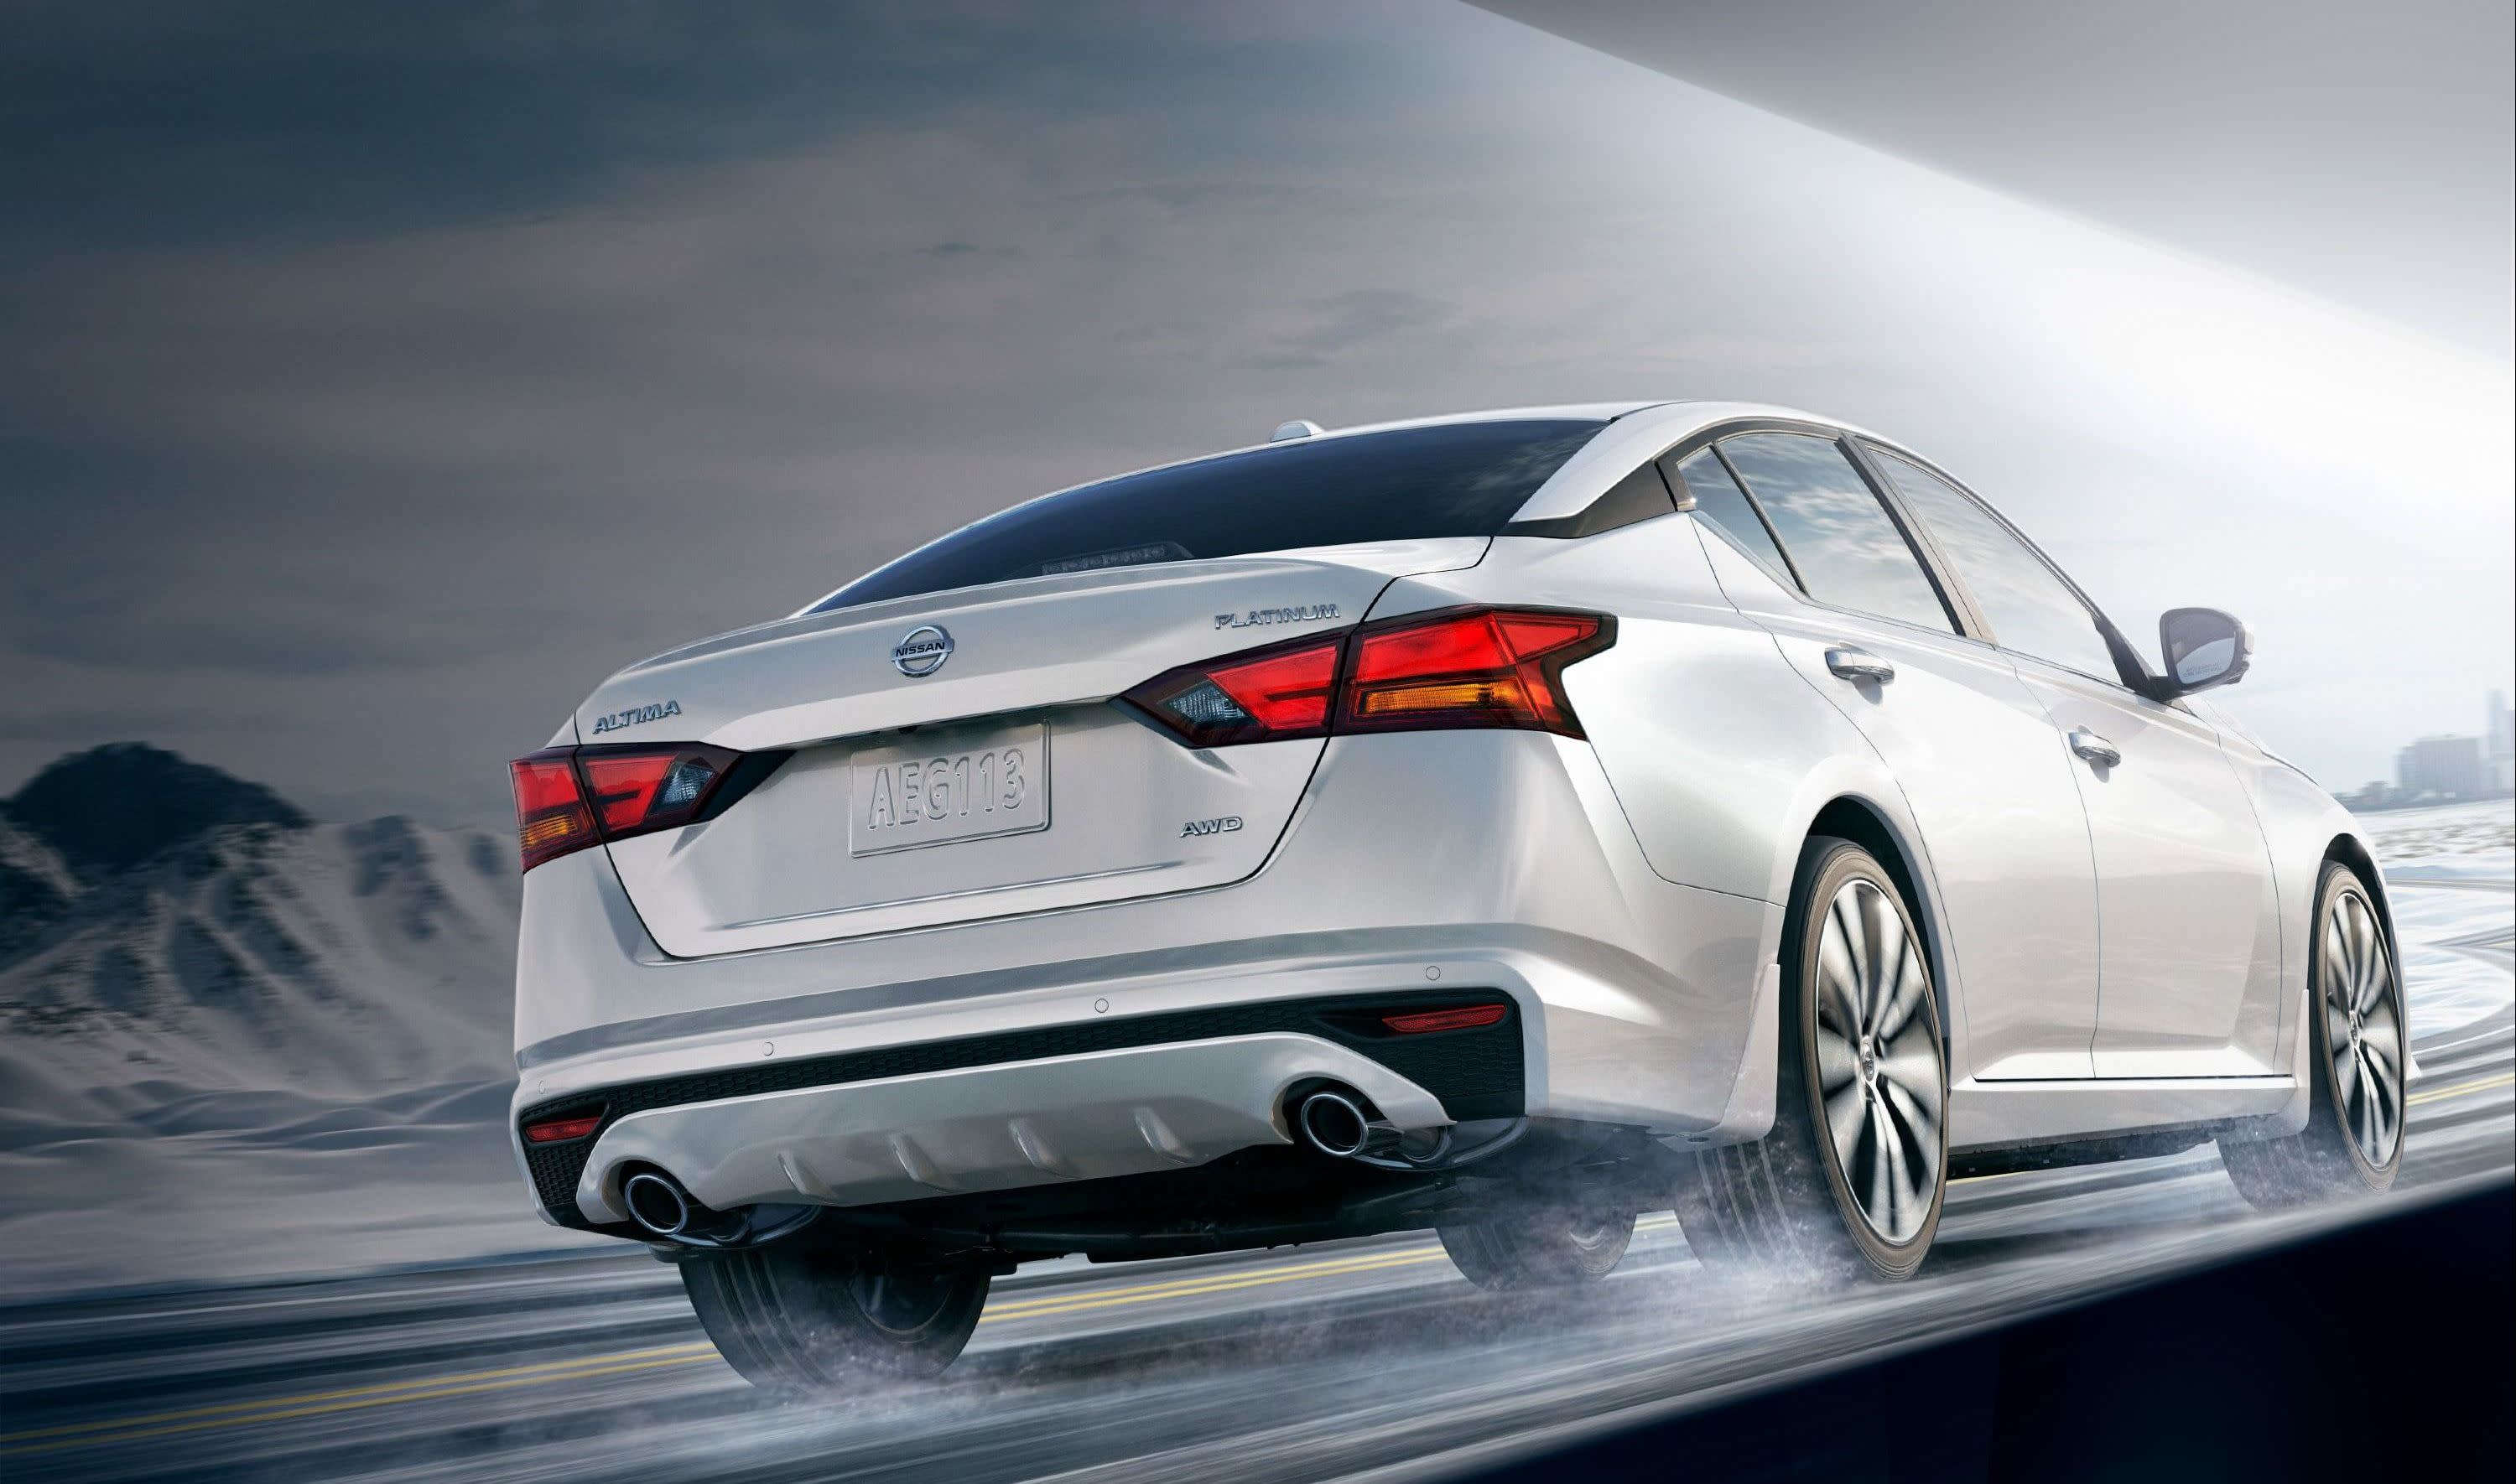 2019 Nissan Altima Financing near Orland Park, IL